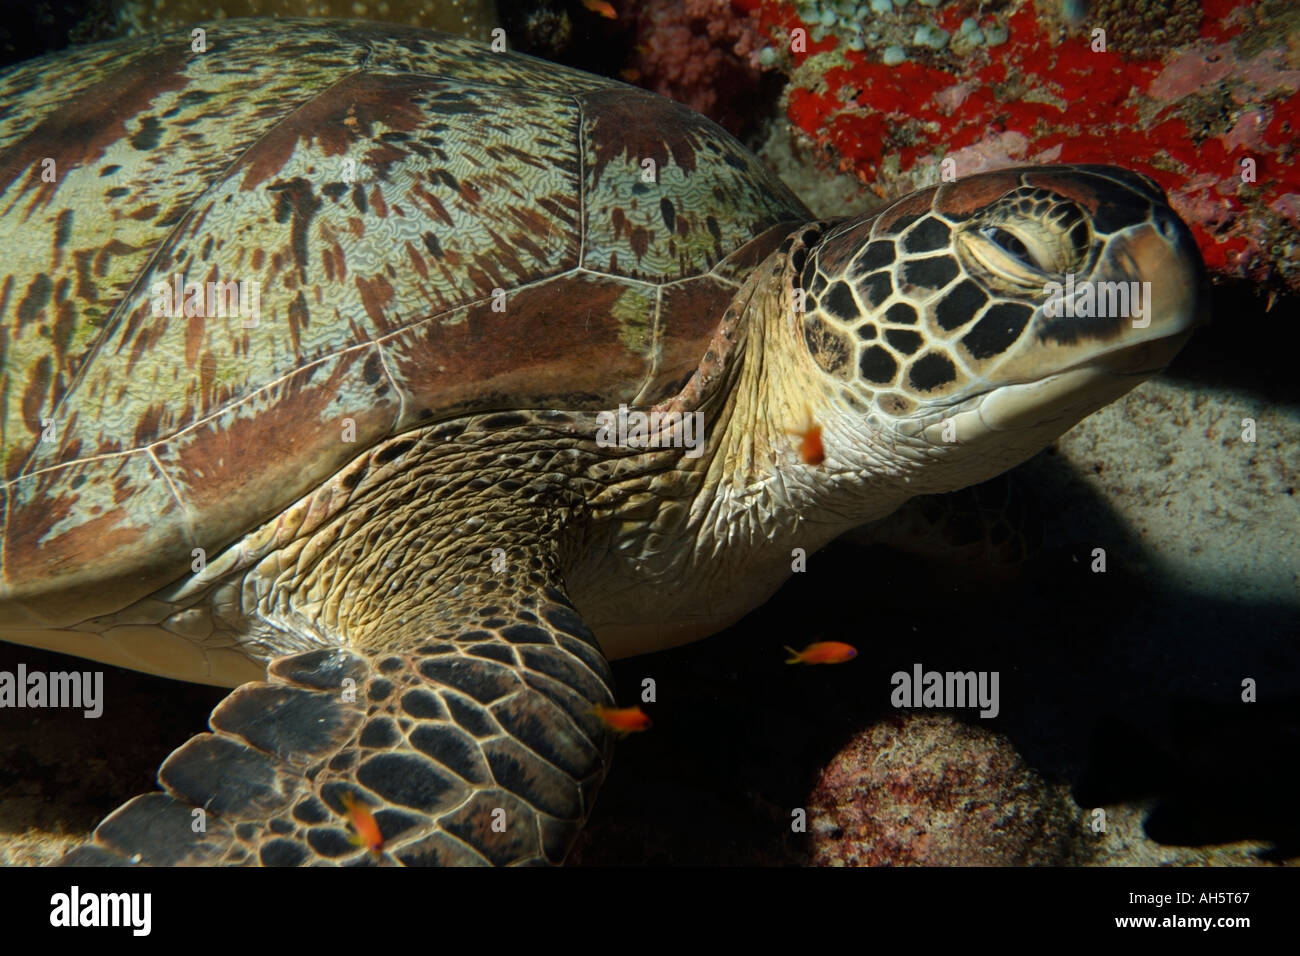 Green Turtle - Chelonia mydas - swimming on a seabed - Stock Image